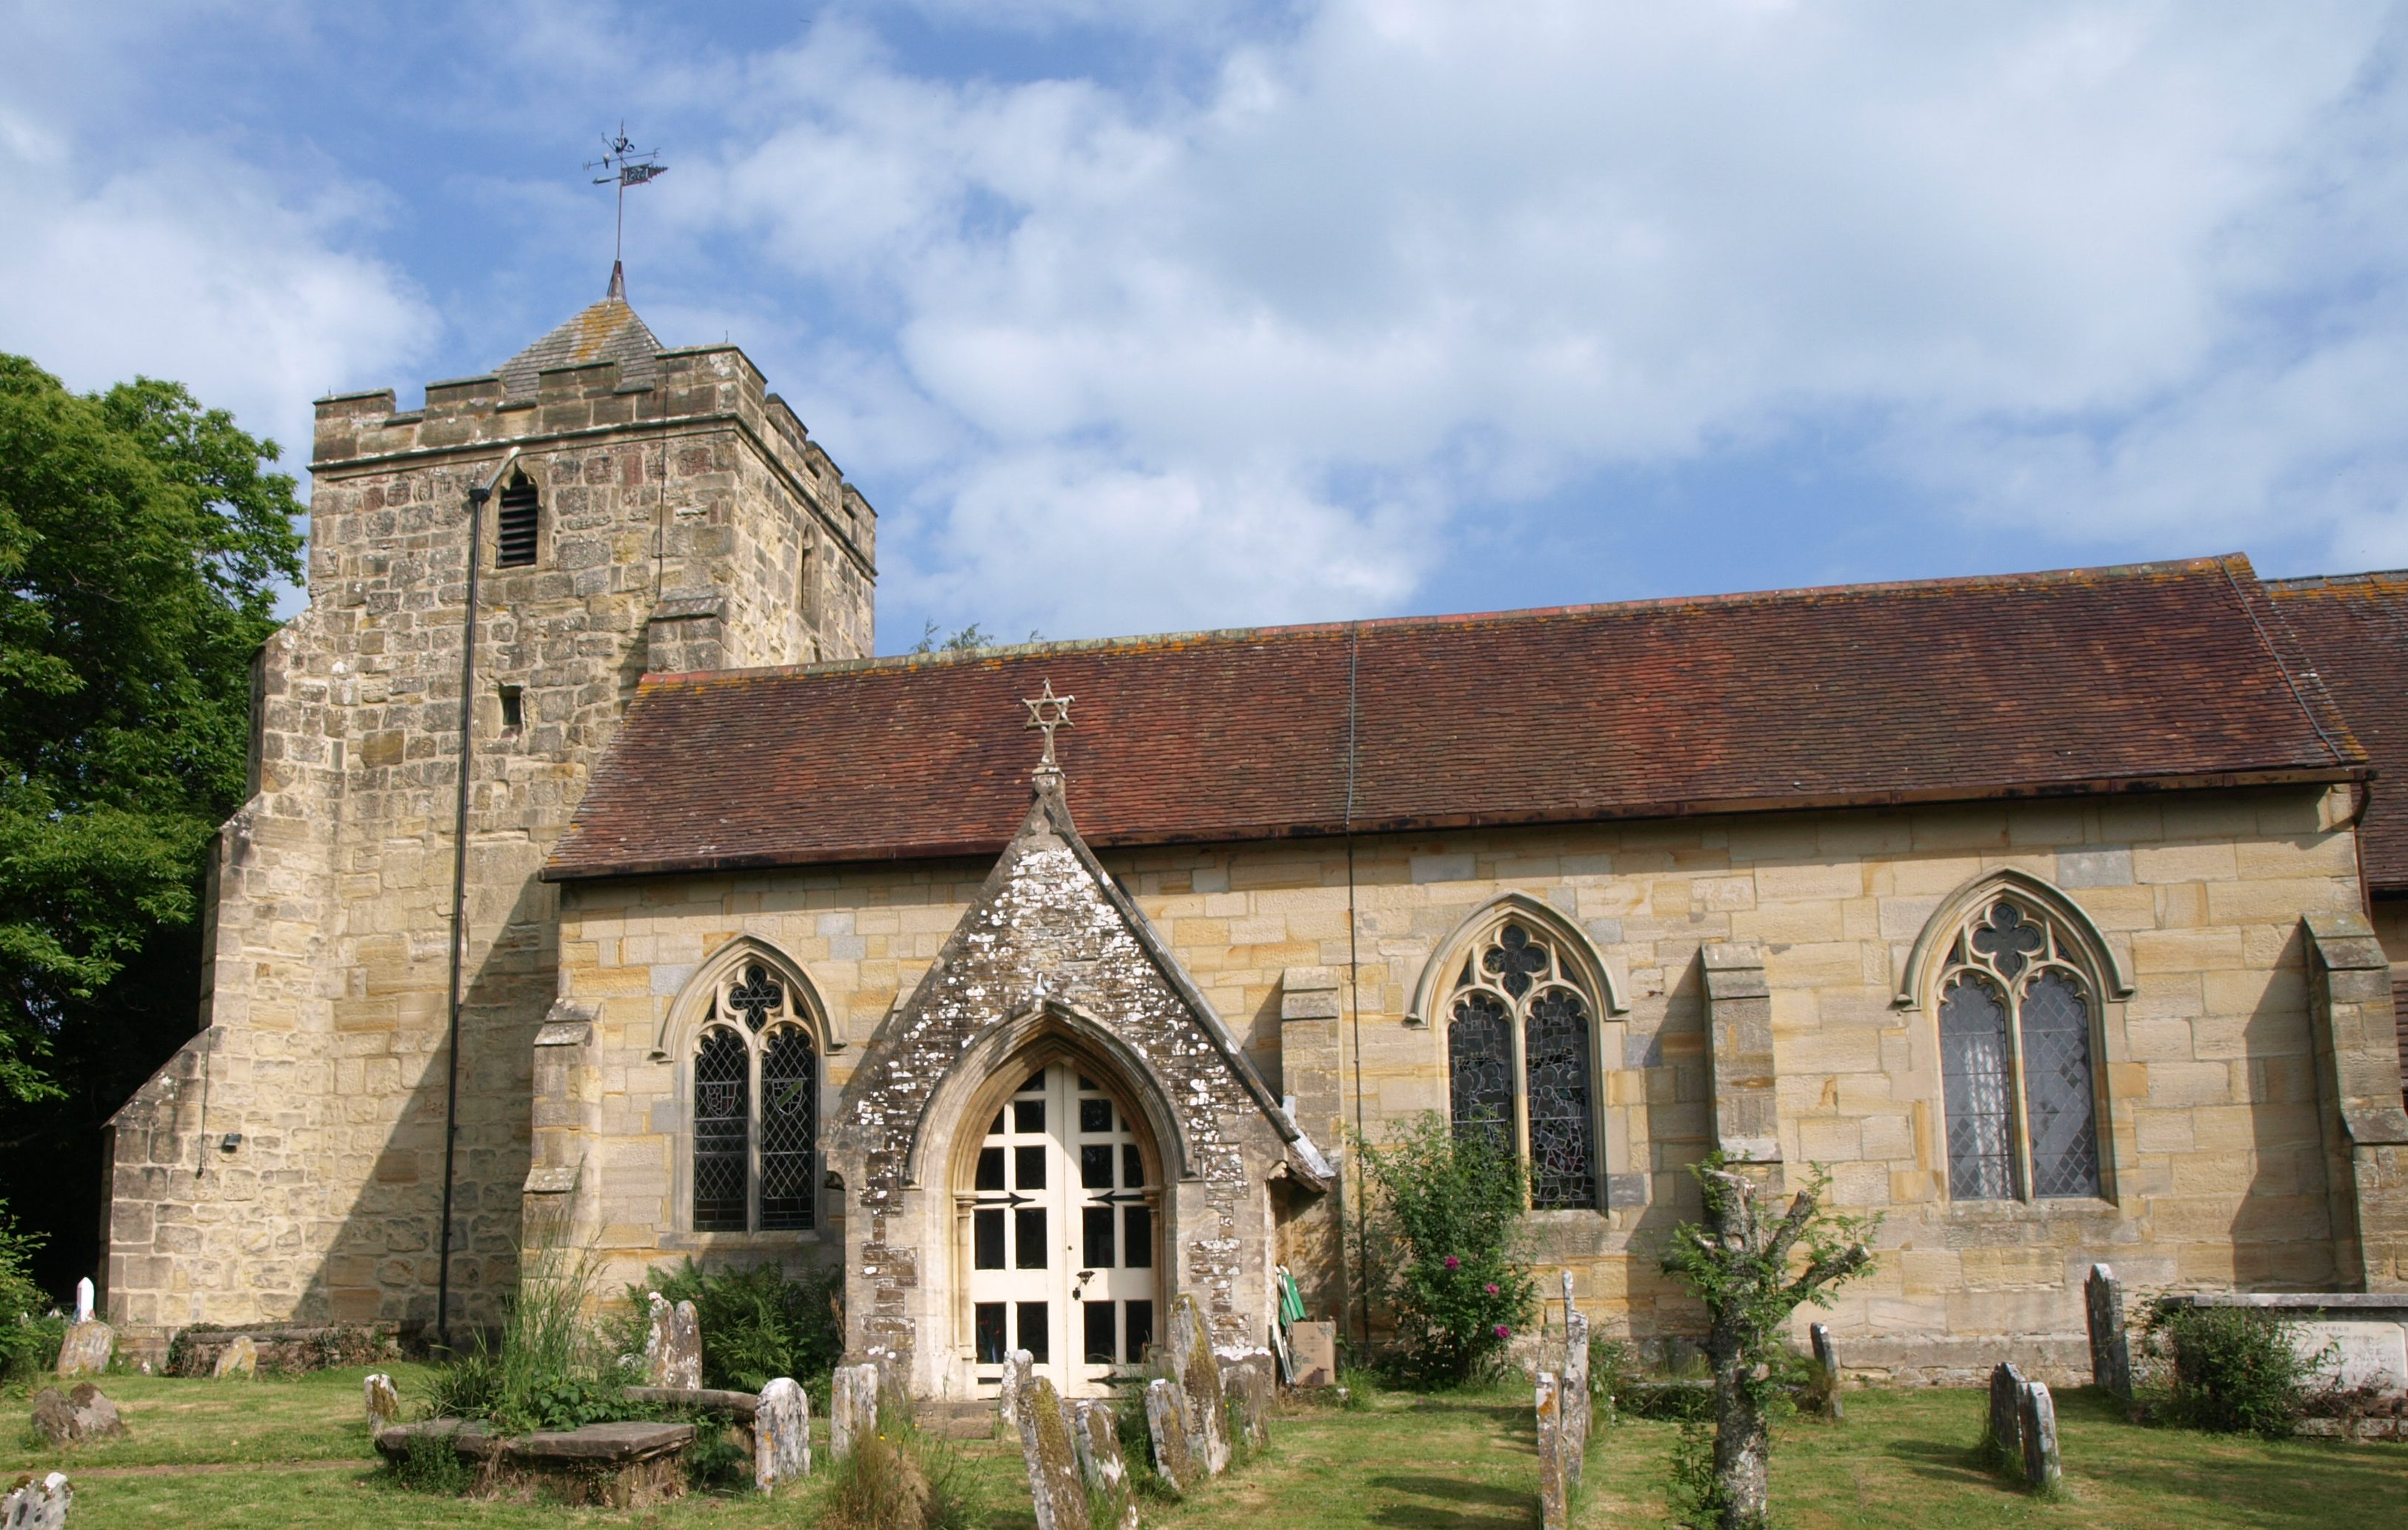 Sedlescombe Parish Church